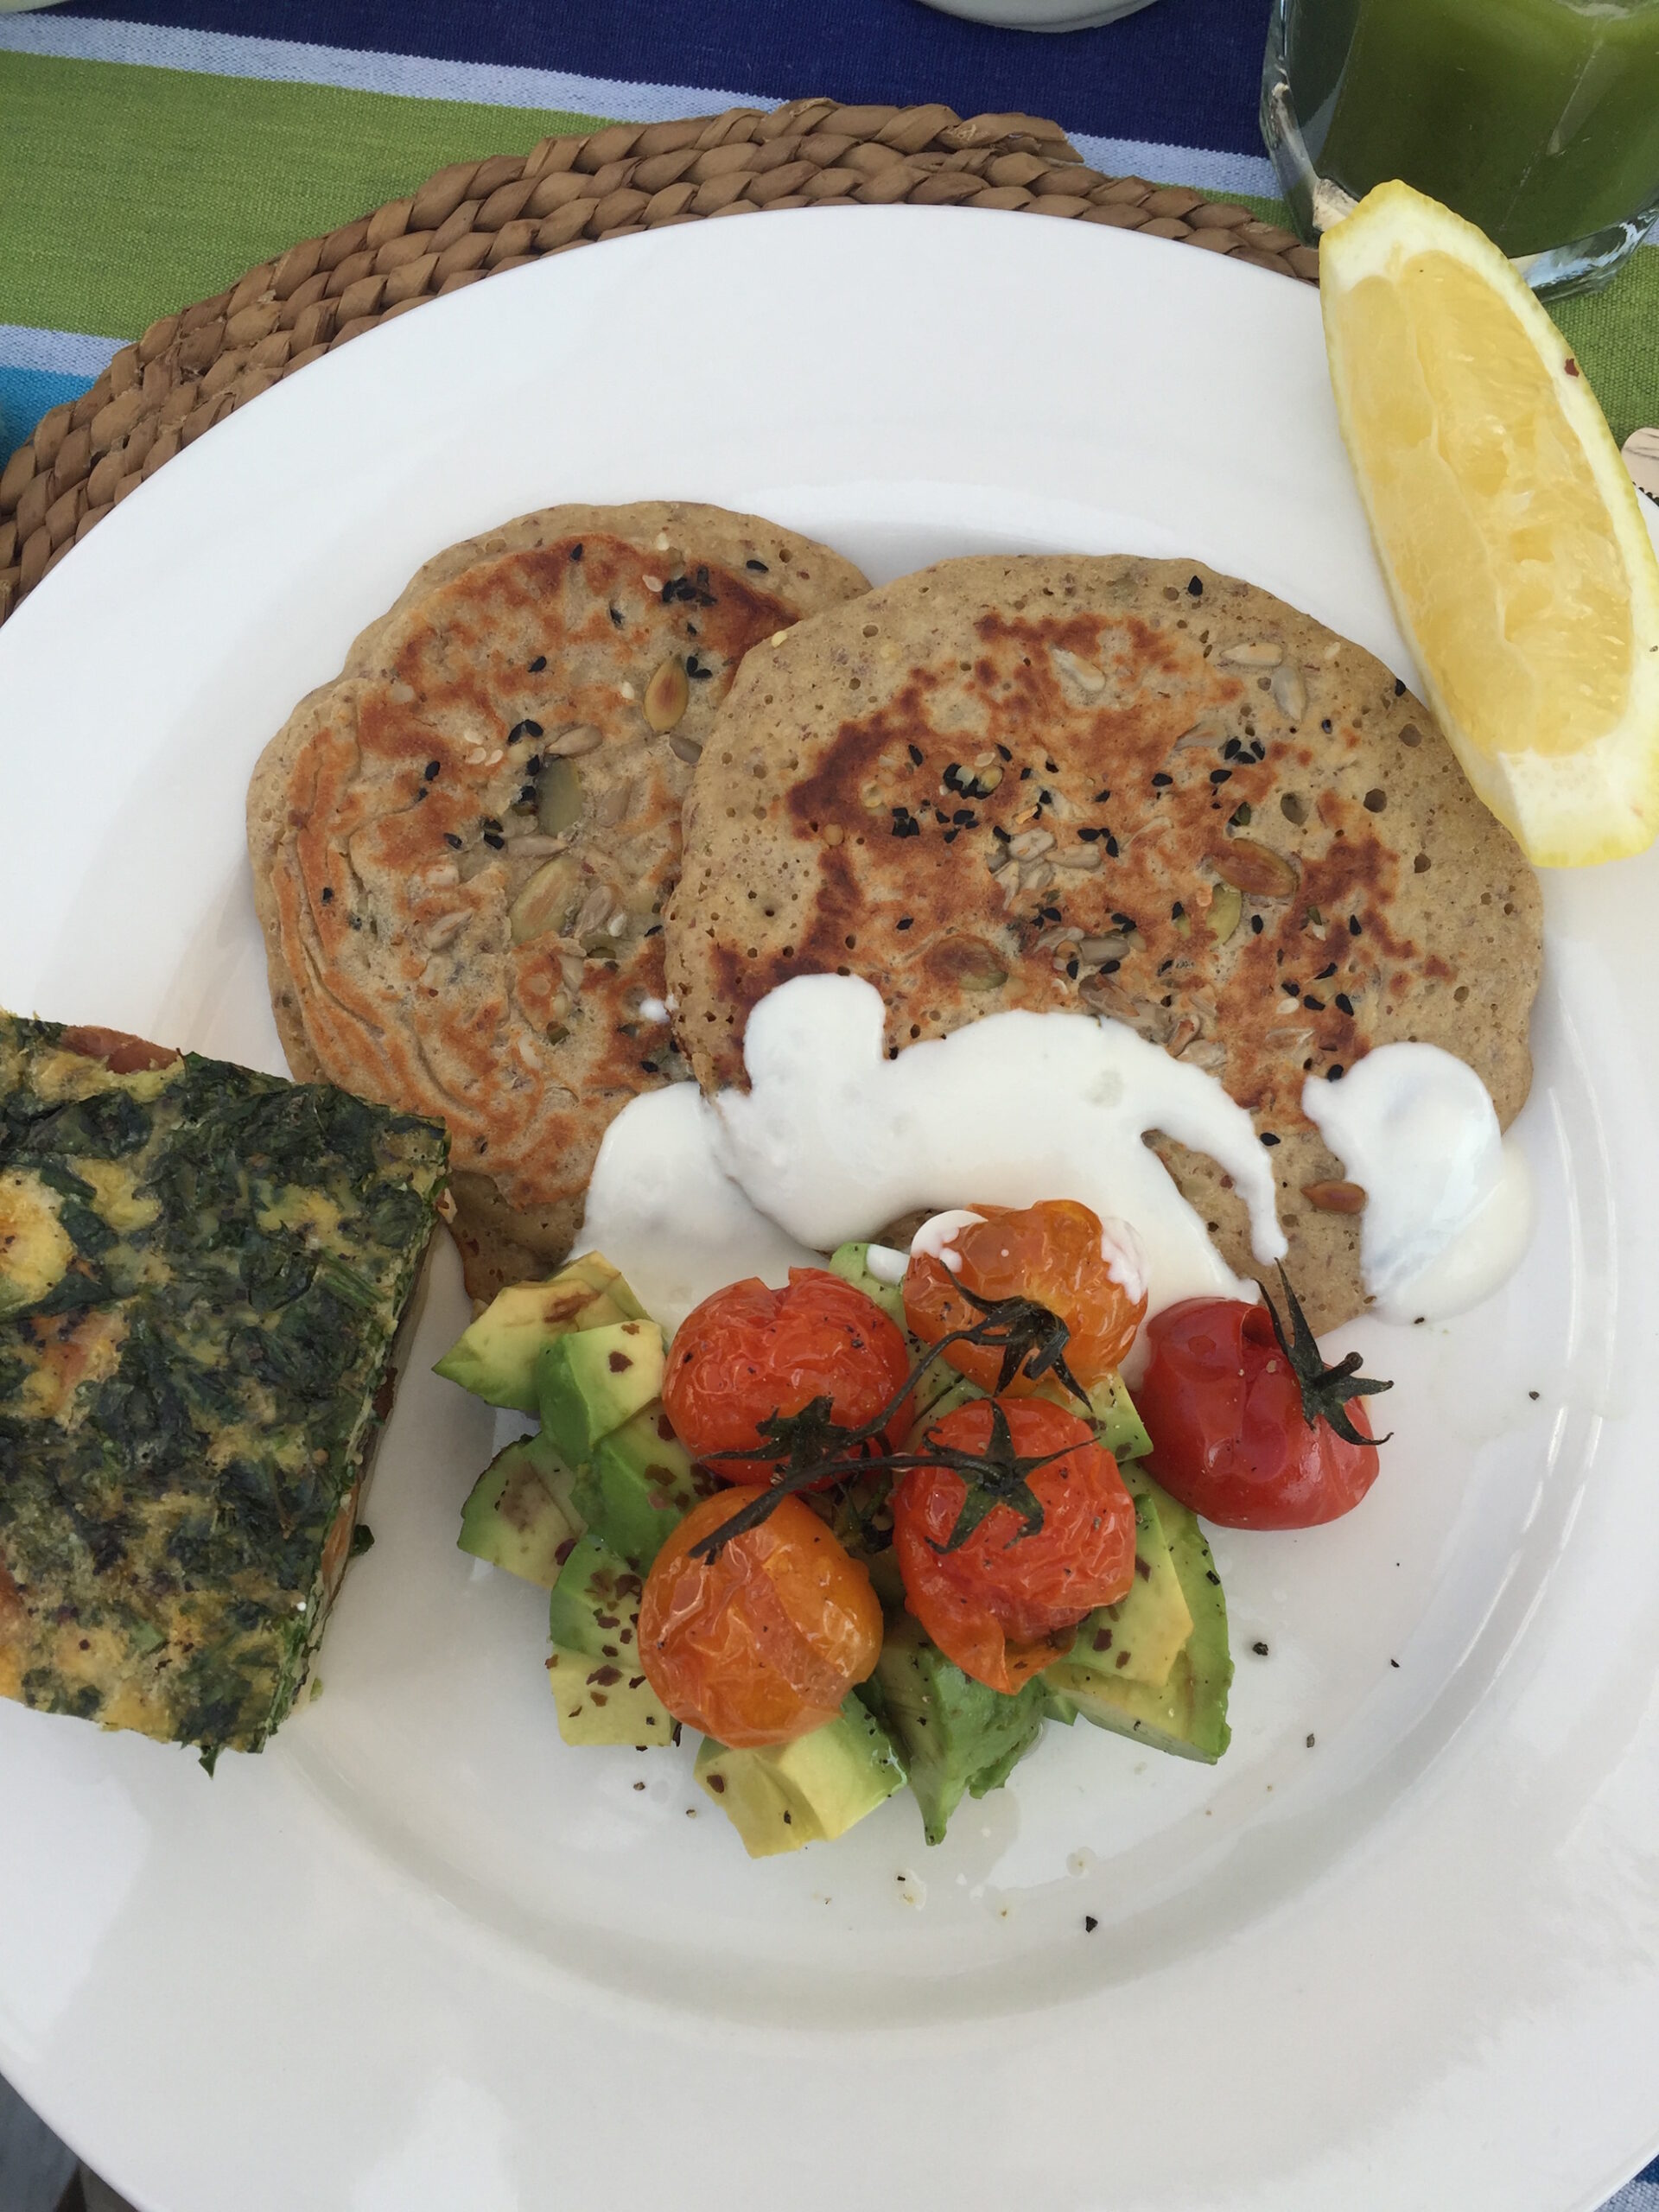 Ben Horne's pancakes with an avocado and tomato salad on the side